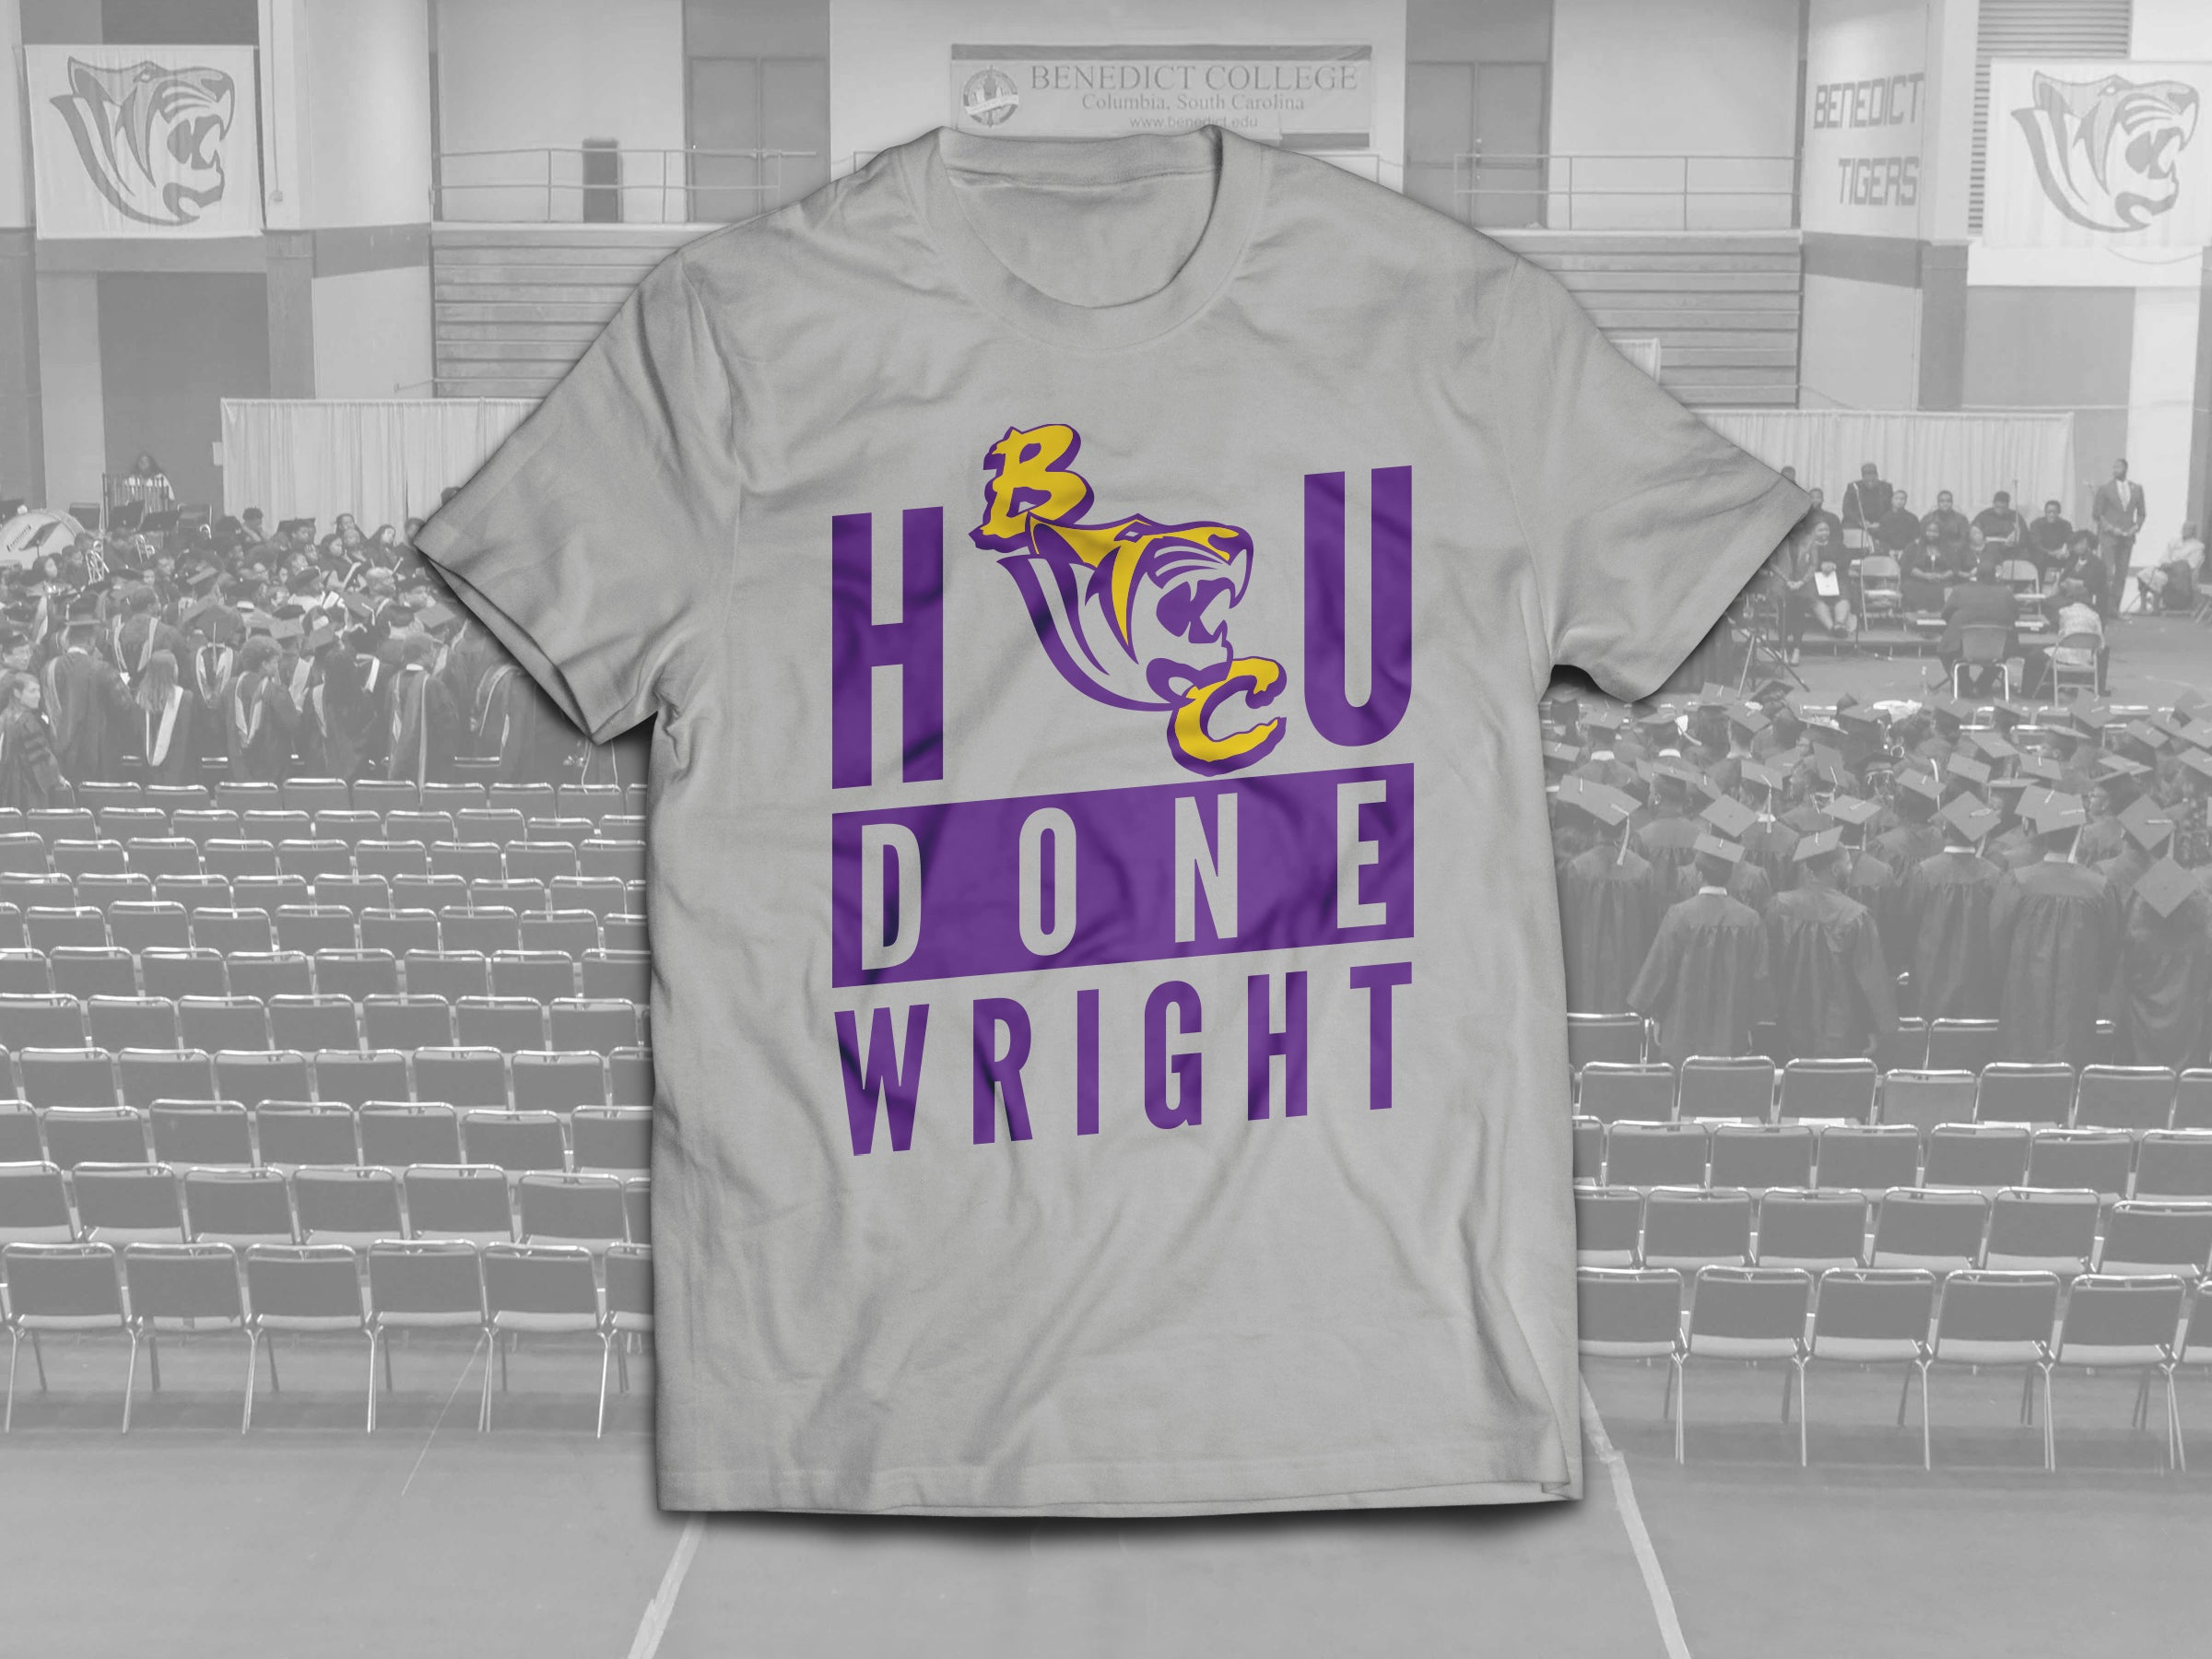 The H'BC'U Done Wright Tee